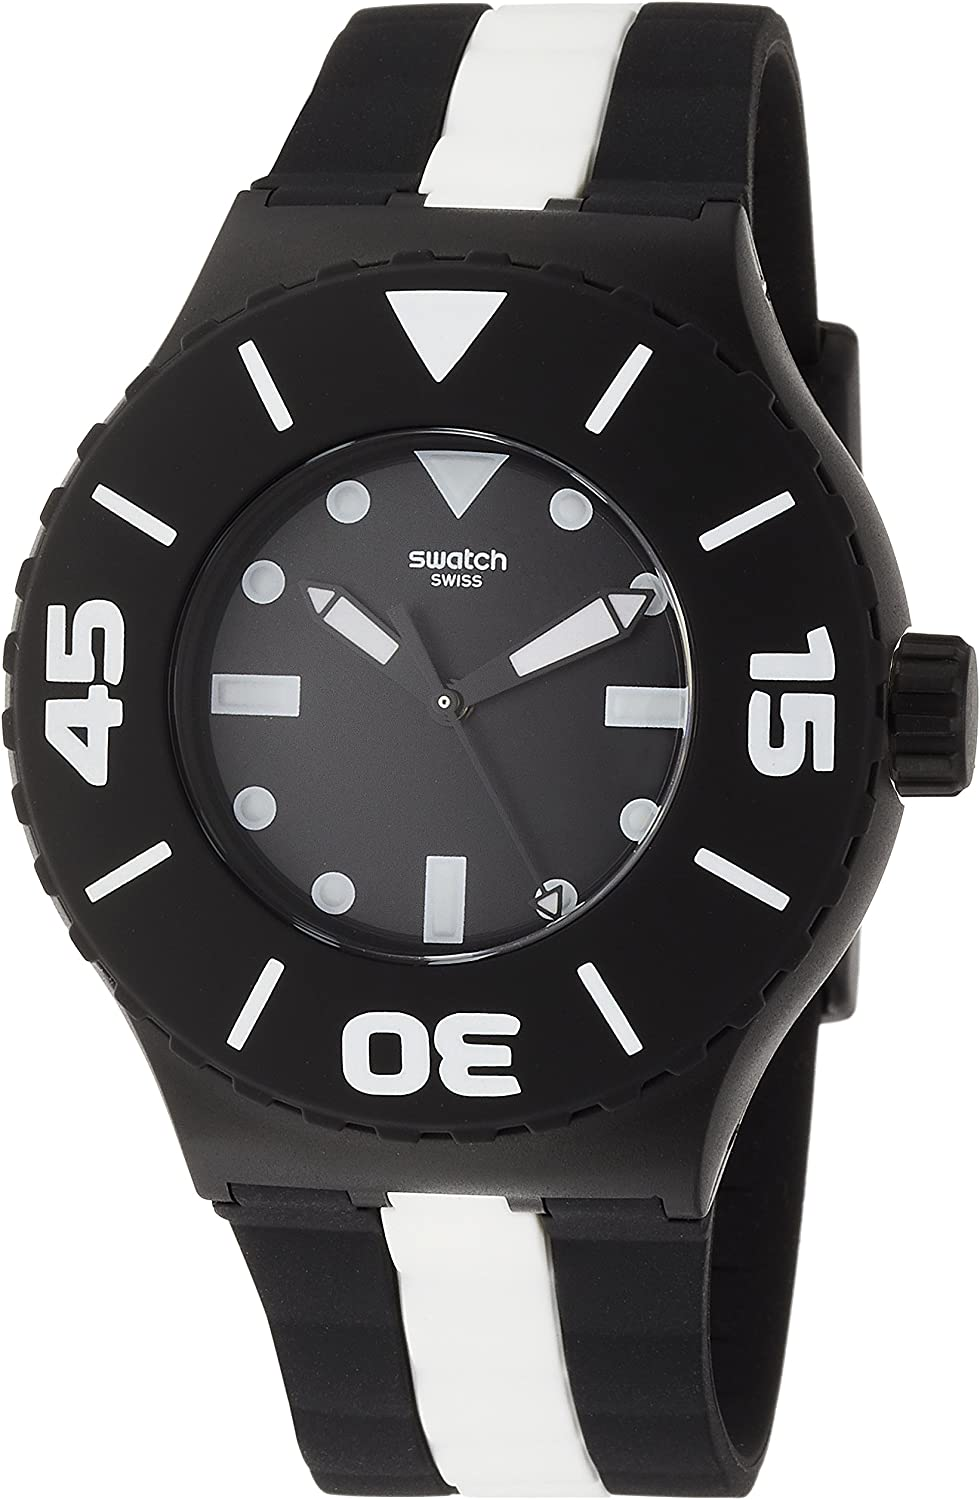 Swatch Scuba Libre Black Dial Mens Sports Watch SUUB102